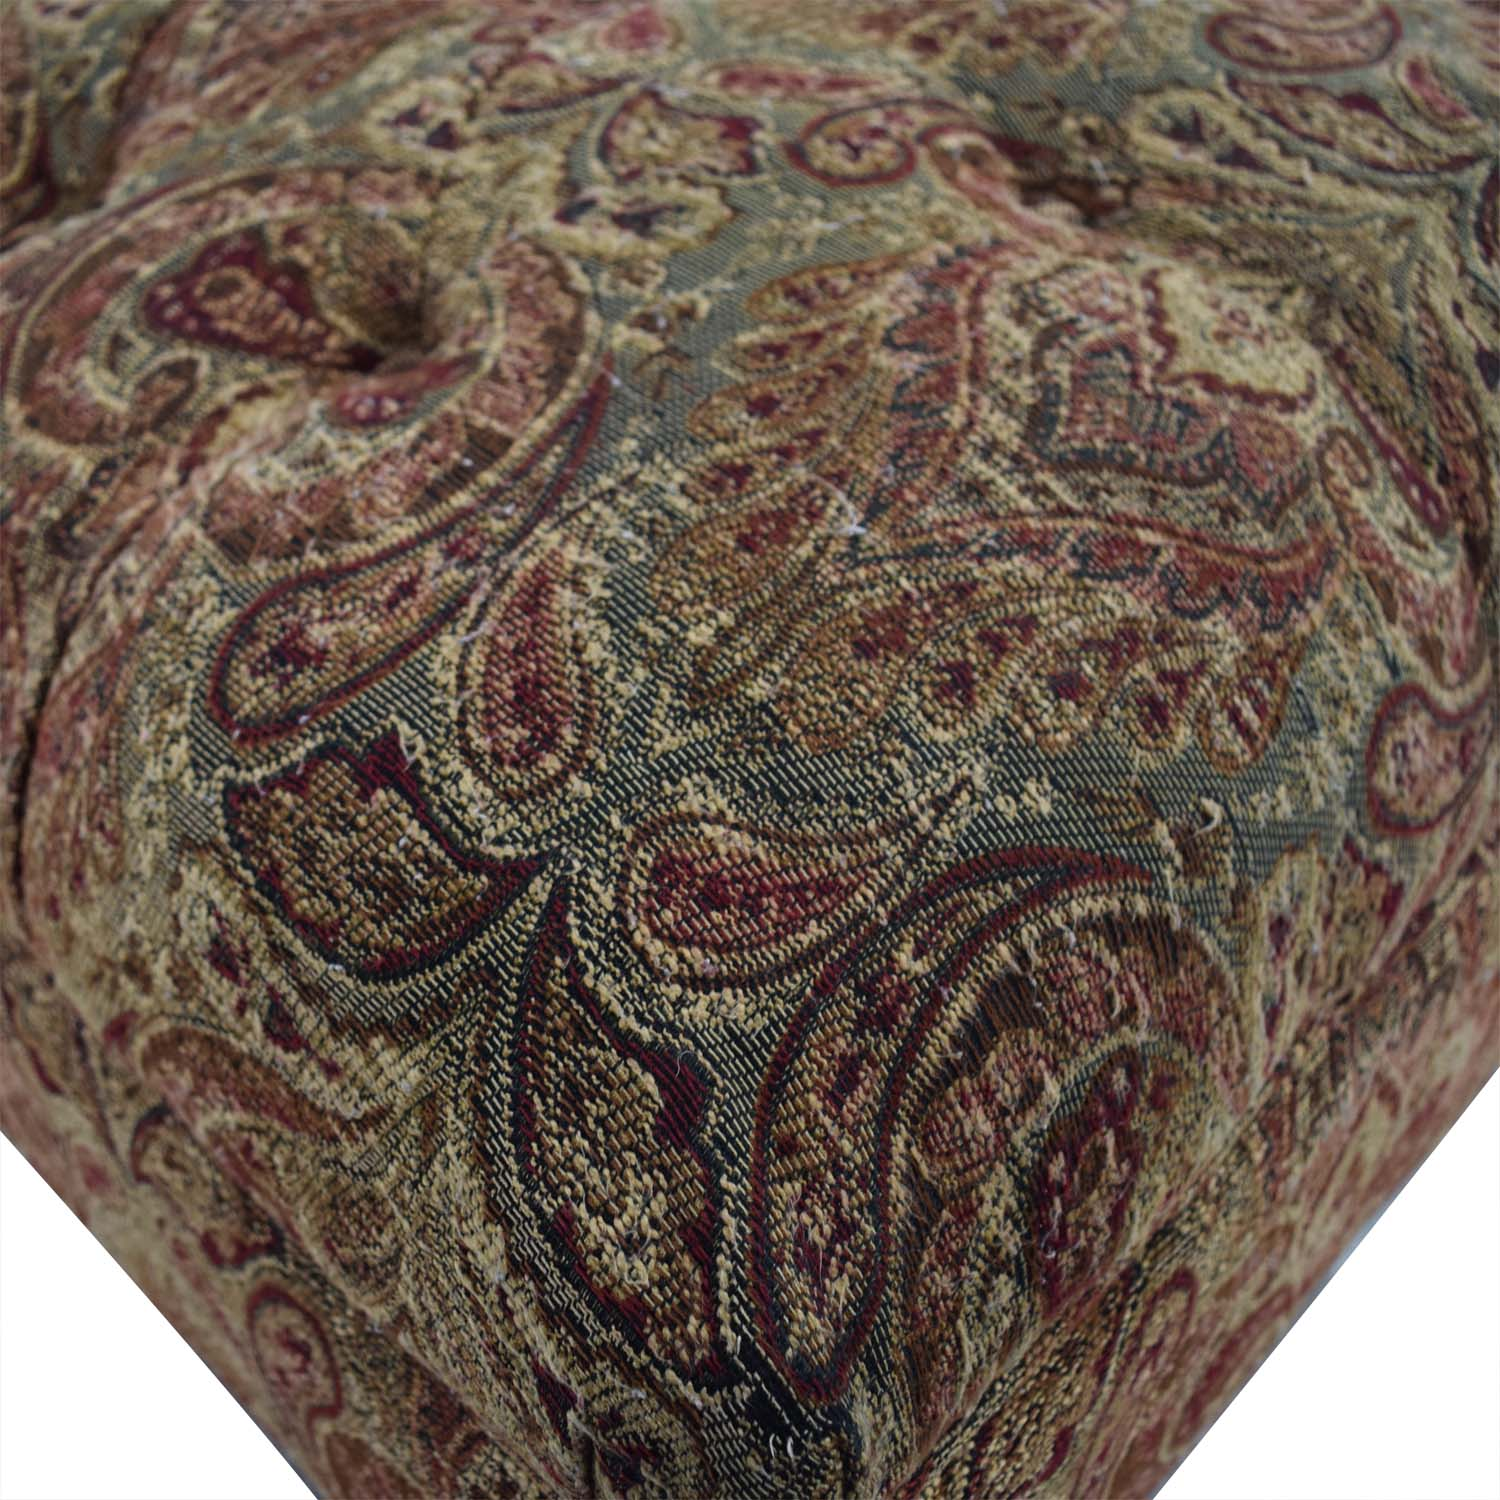 Upholstered Ottoman dimensions